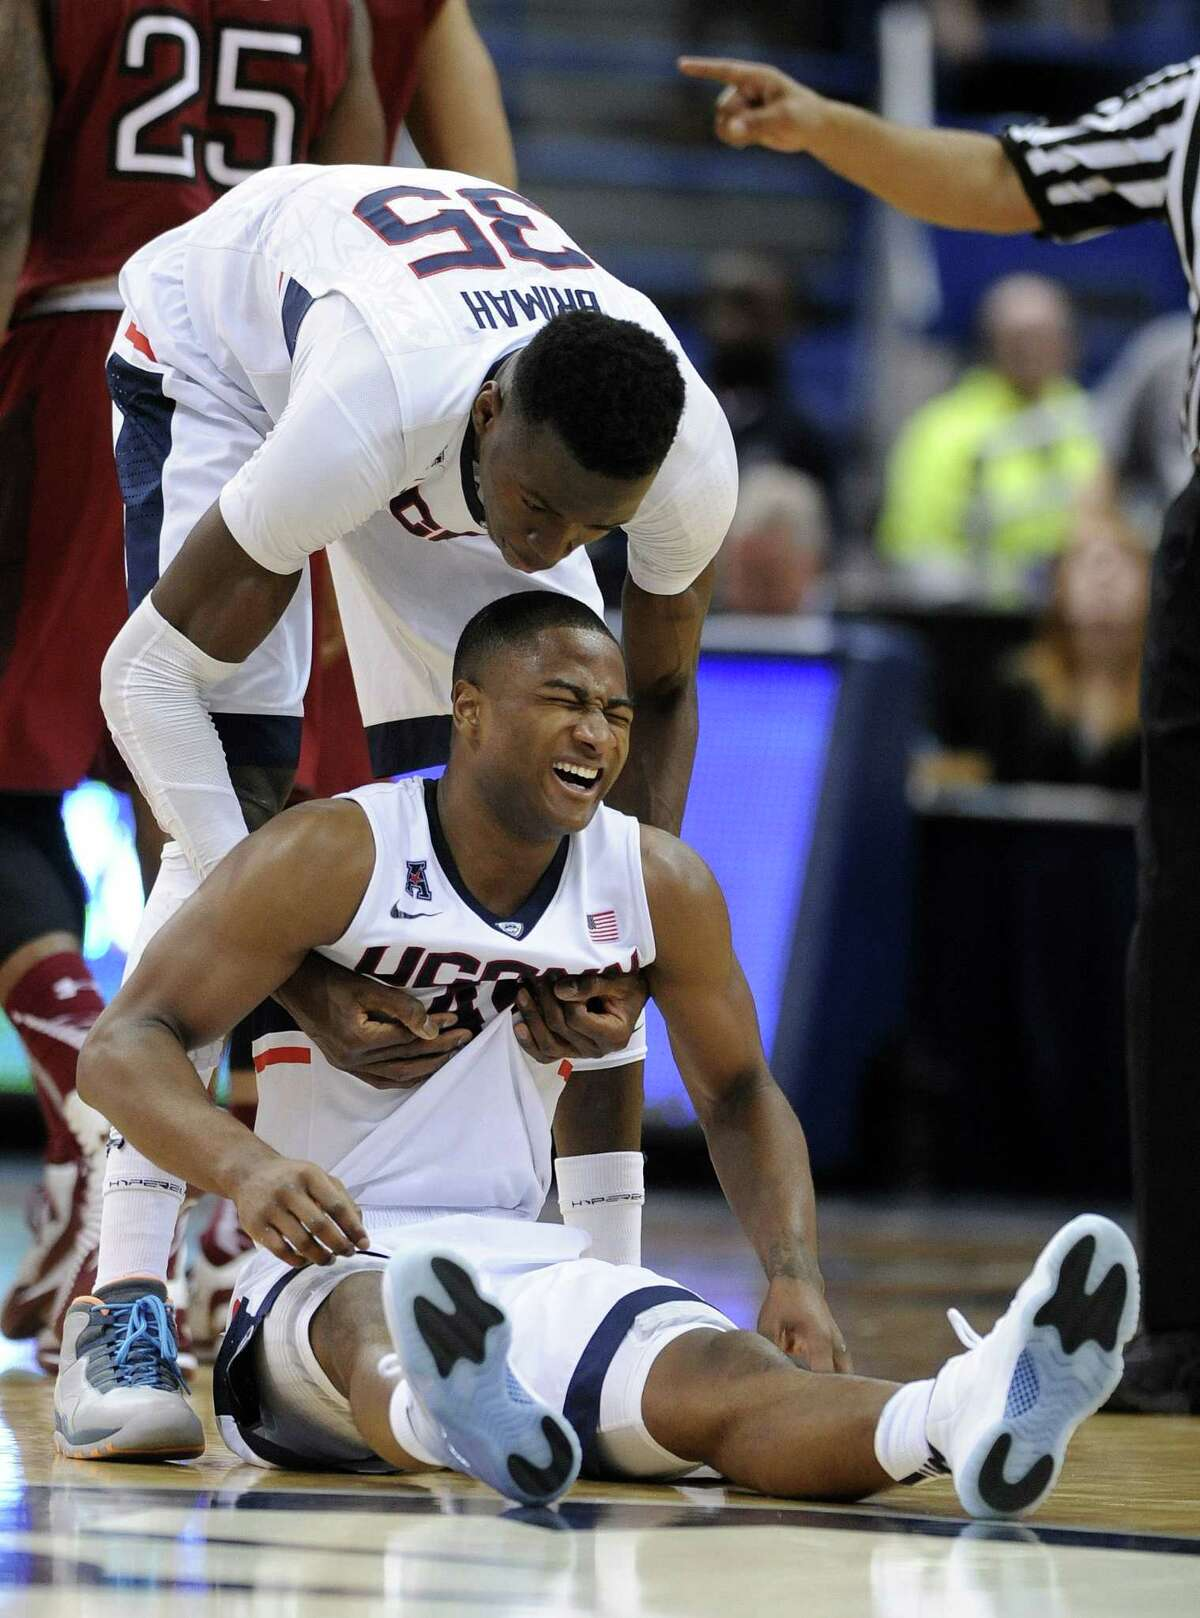 UConn's Amida Brimah, top, and Rodney Purvis react during the second half of the Huskies' 57-53 overtime loss to Temple on Wednesday in Hartford.